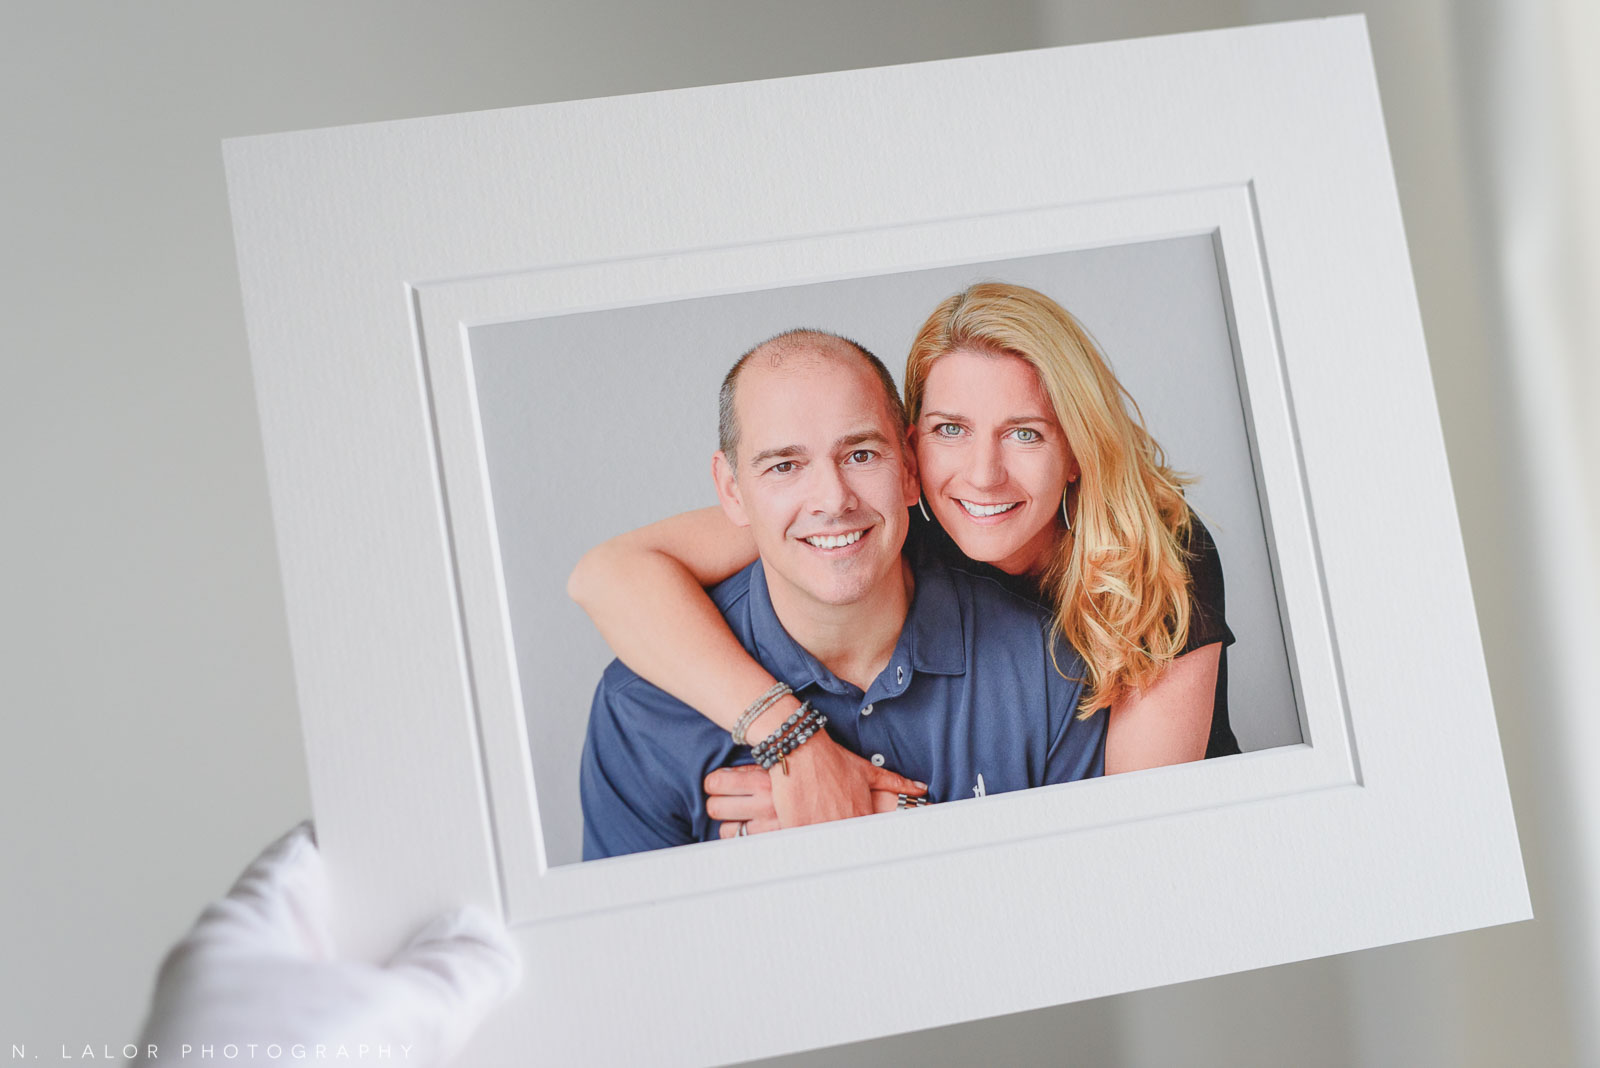 Mom and Dad. Portrait by N. Lalor Photography in Greenwich, Connecticut.